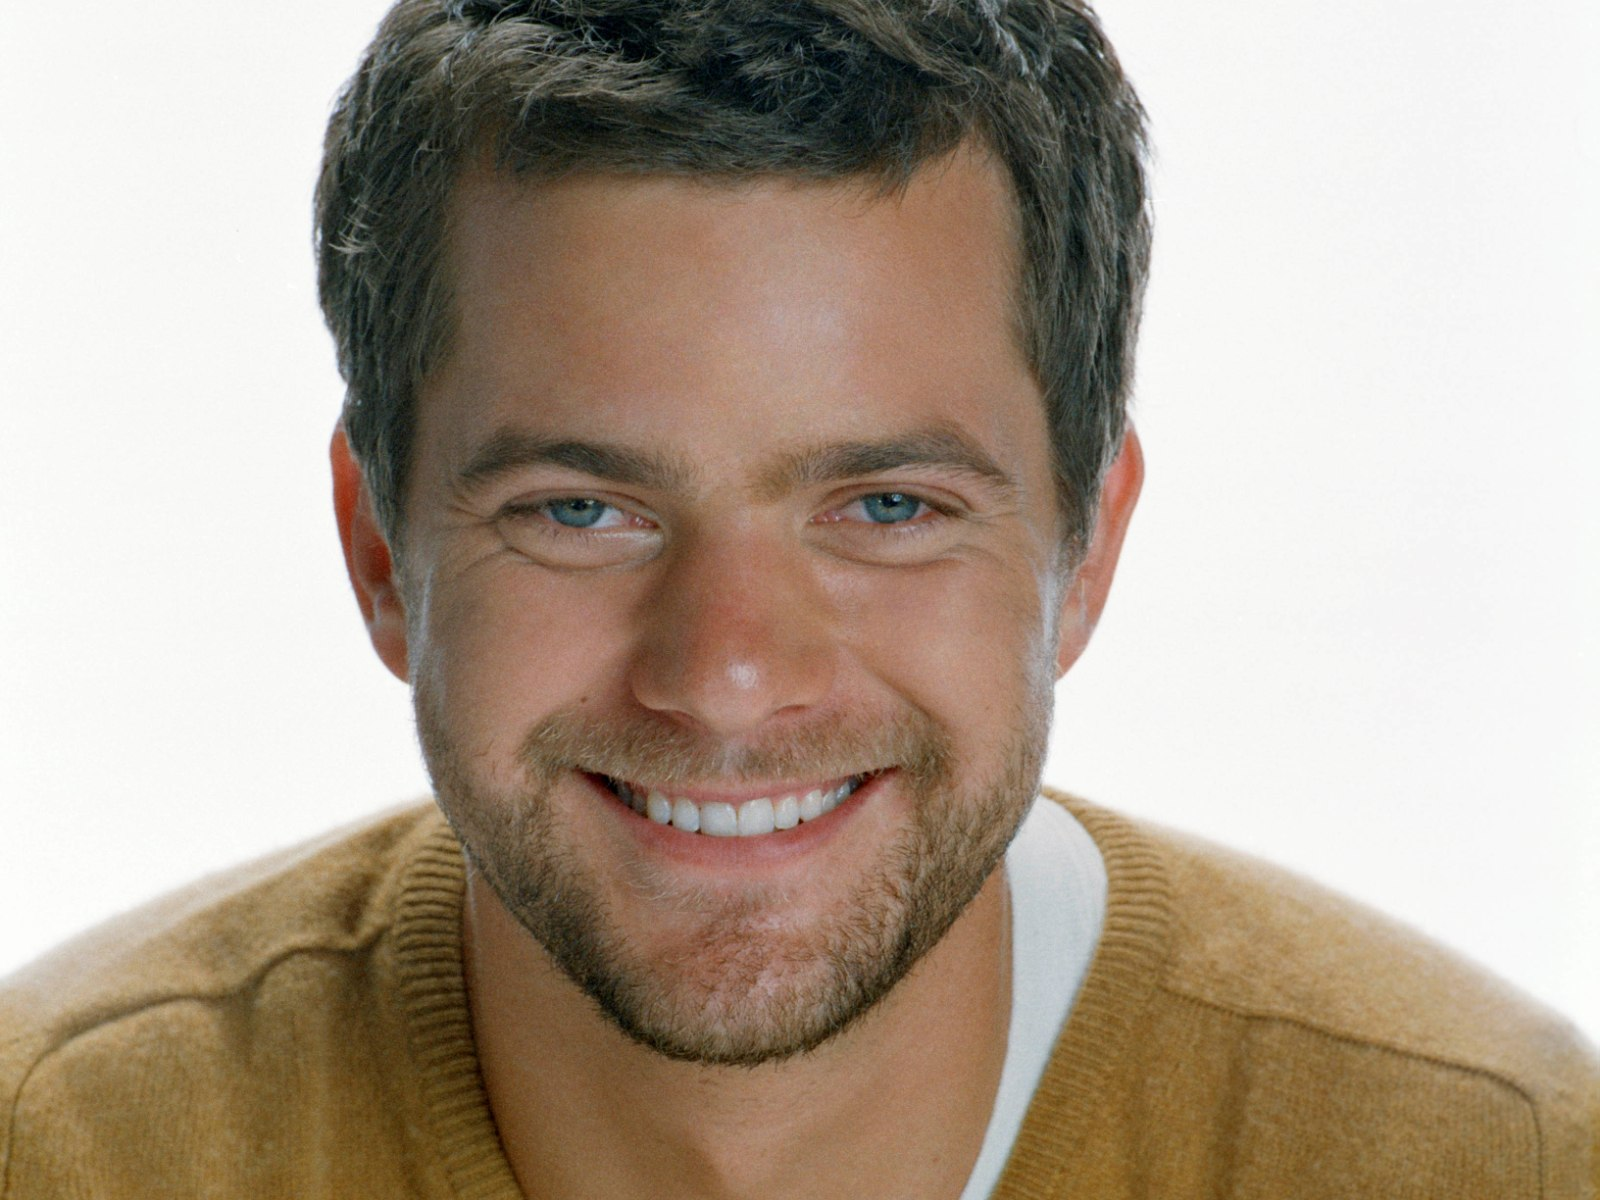 joshua jackson smile wallpaper 59285